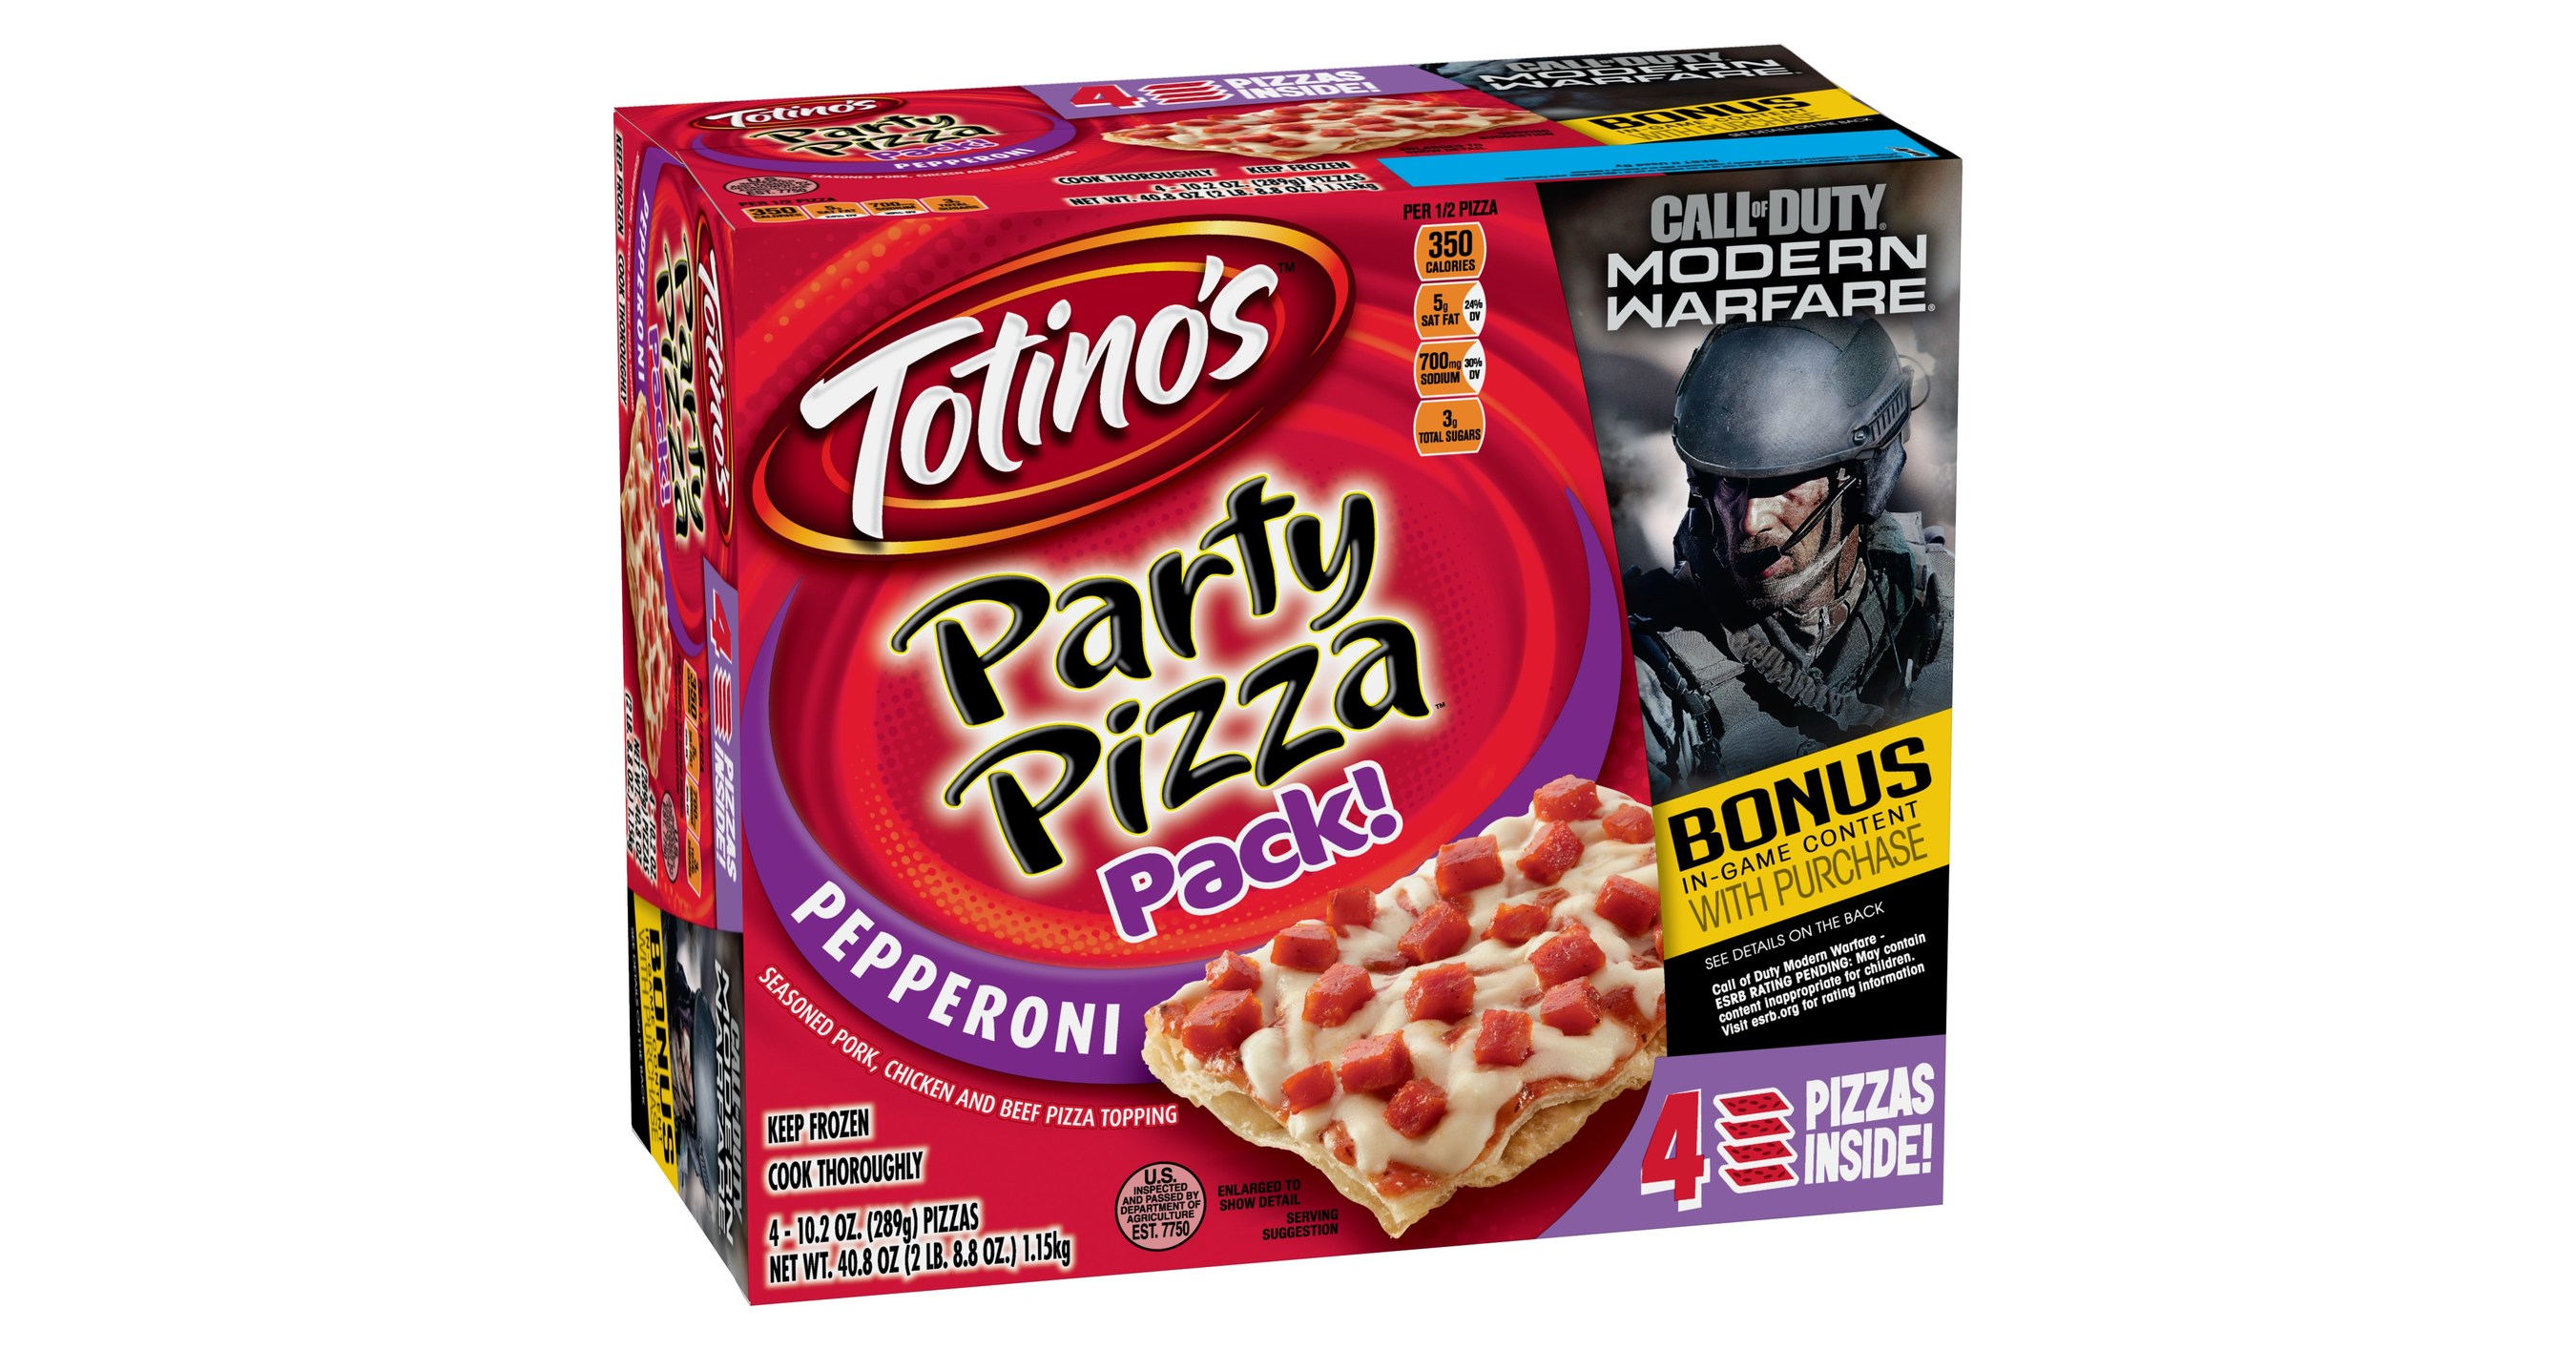 Totinos Teams Up With Activision In Advance Of Call Of Duty